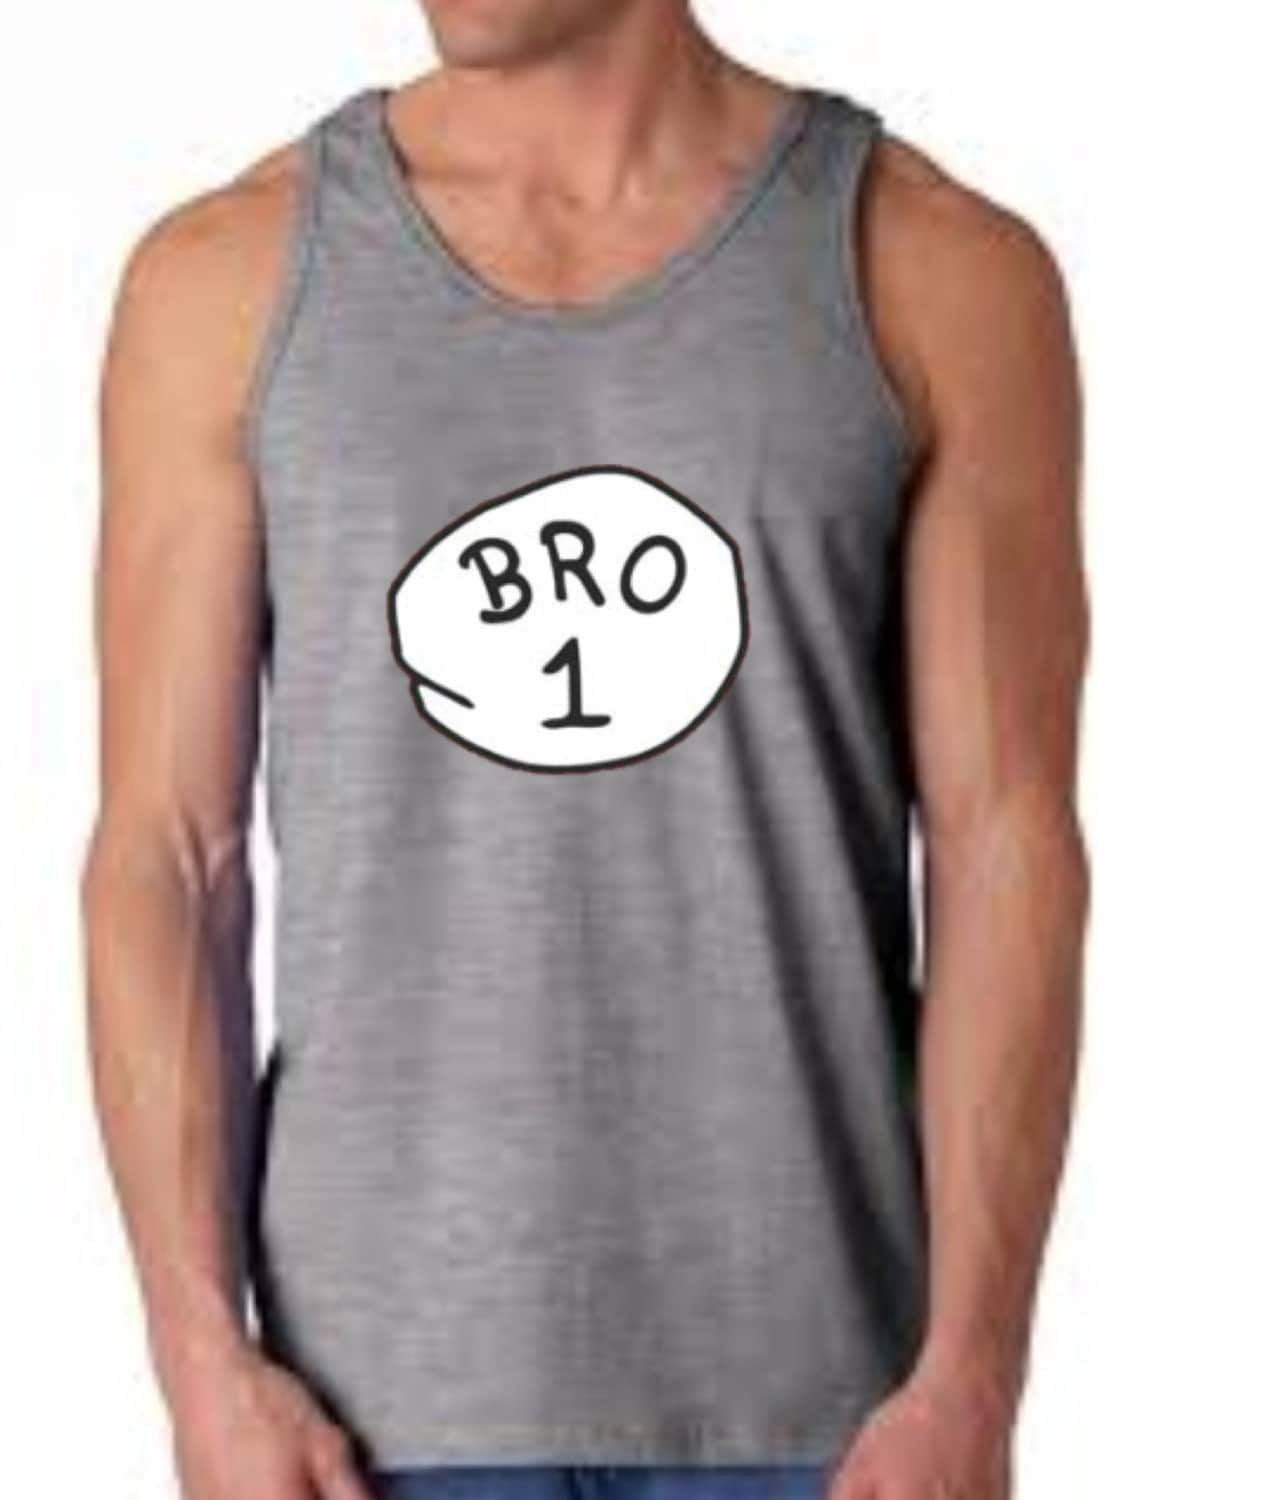 Funny Tank Tops With Cool Designs. If you are look for a funny tank top with a clever or weird design you are definitely in the right place. Spreadshirt has the funniest tank top designs you can imagine. Purchase one for yourself to wear to the beach, or choose one as a gift for a special friend.